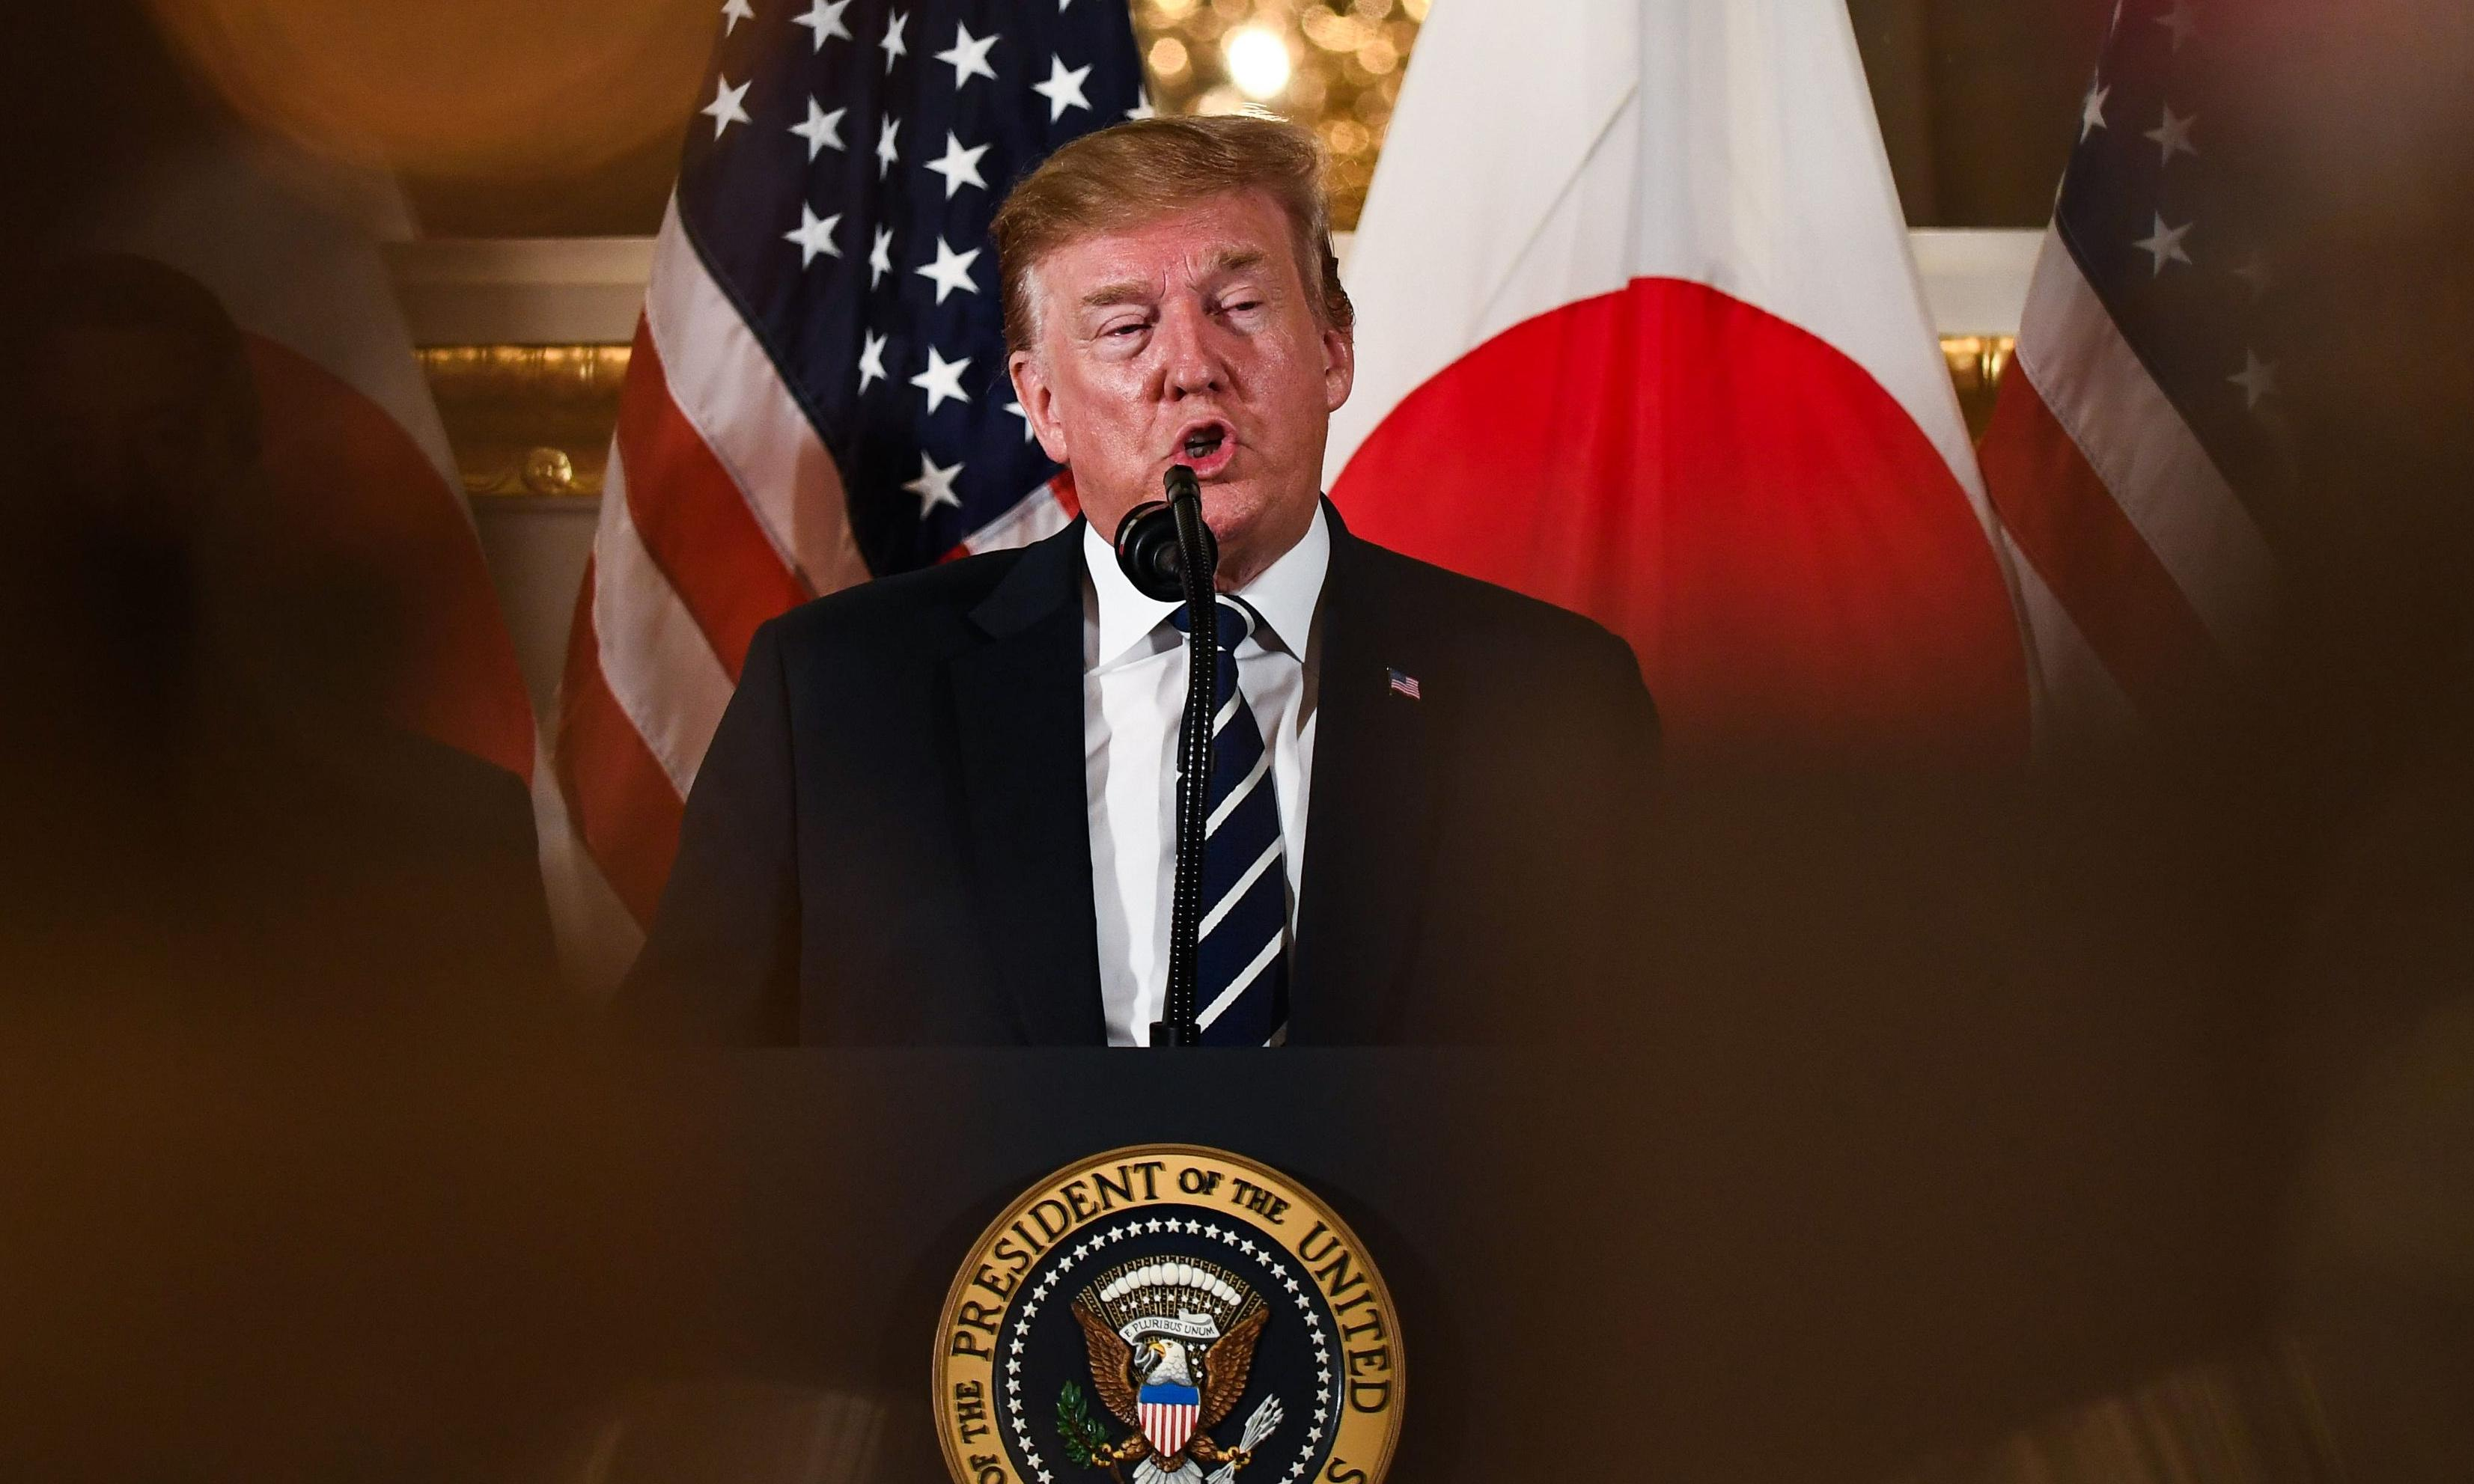 Trump arrives in Japan for ceremonial visit and trade talks